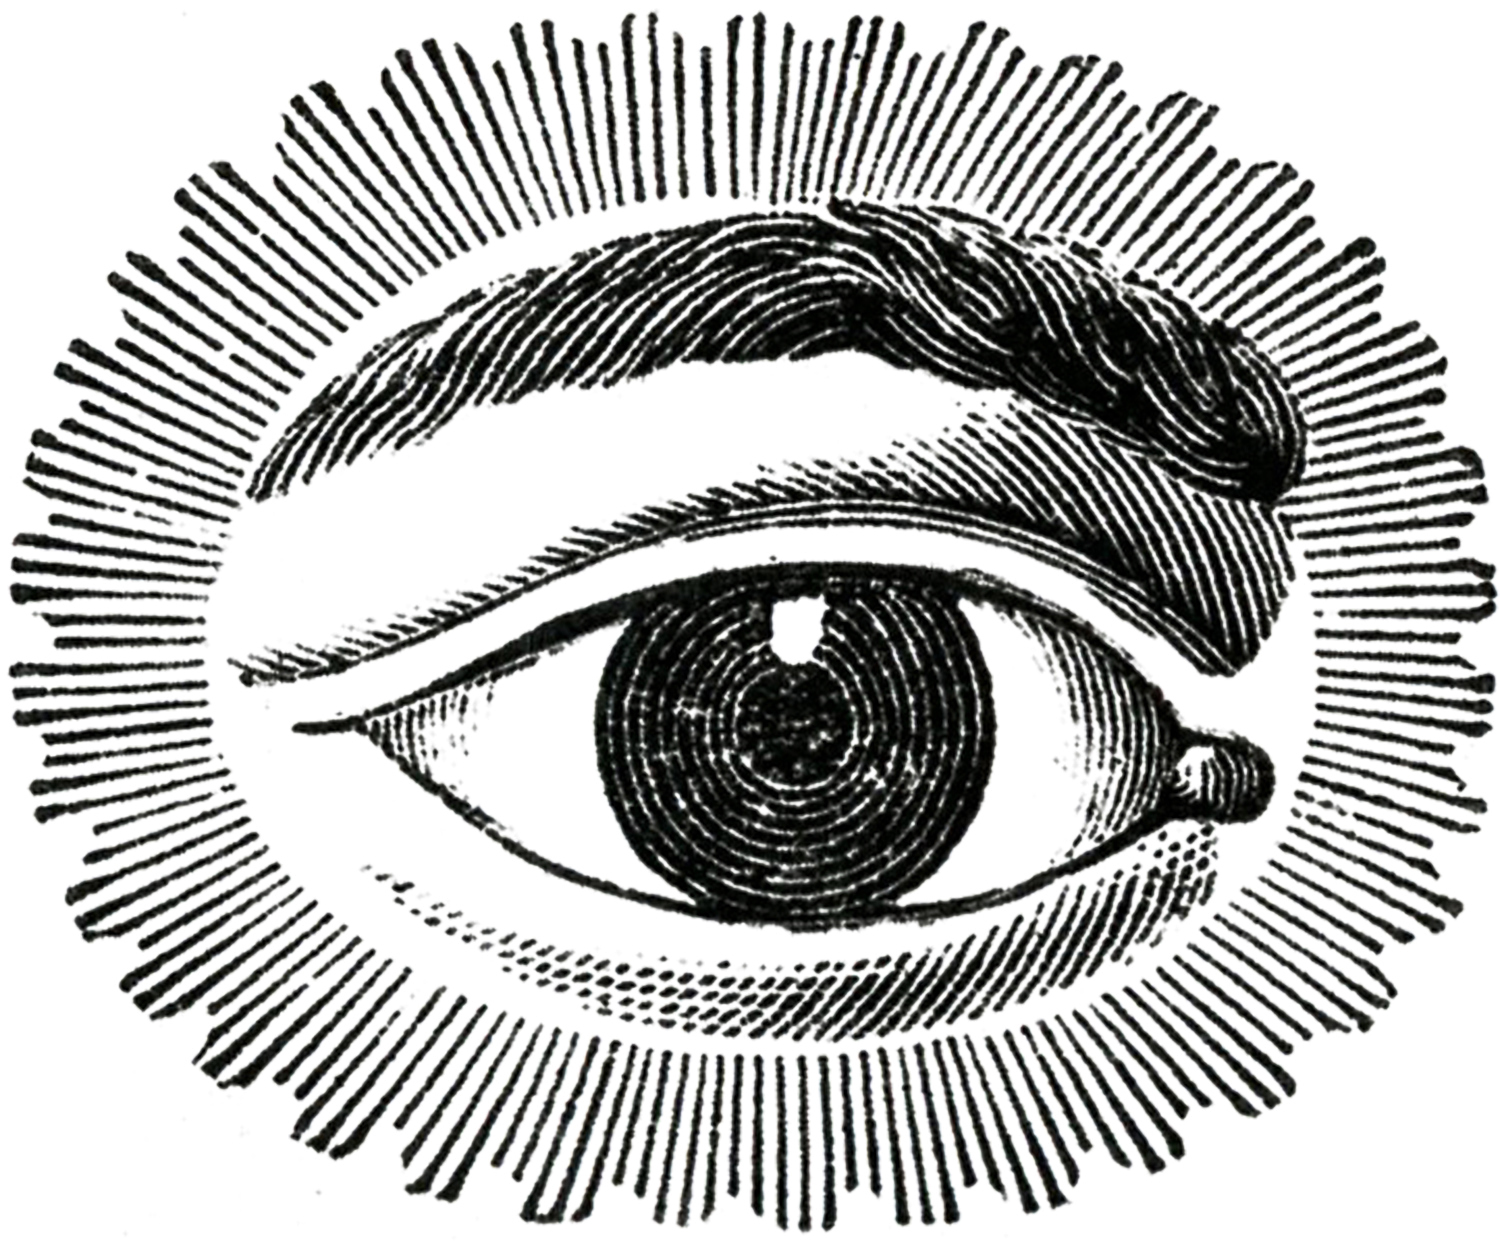 Free Public Domain Image Watching Eye